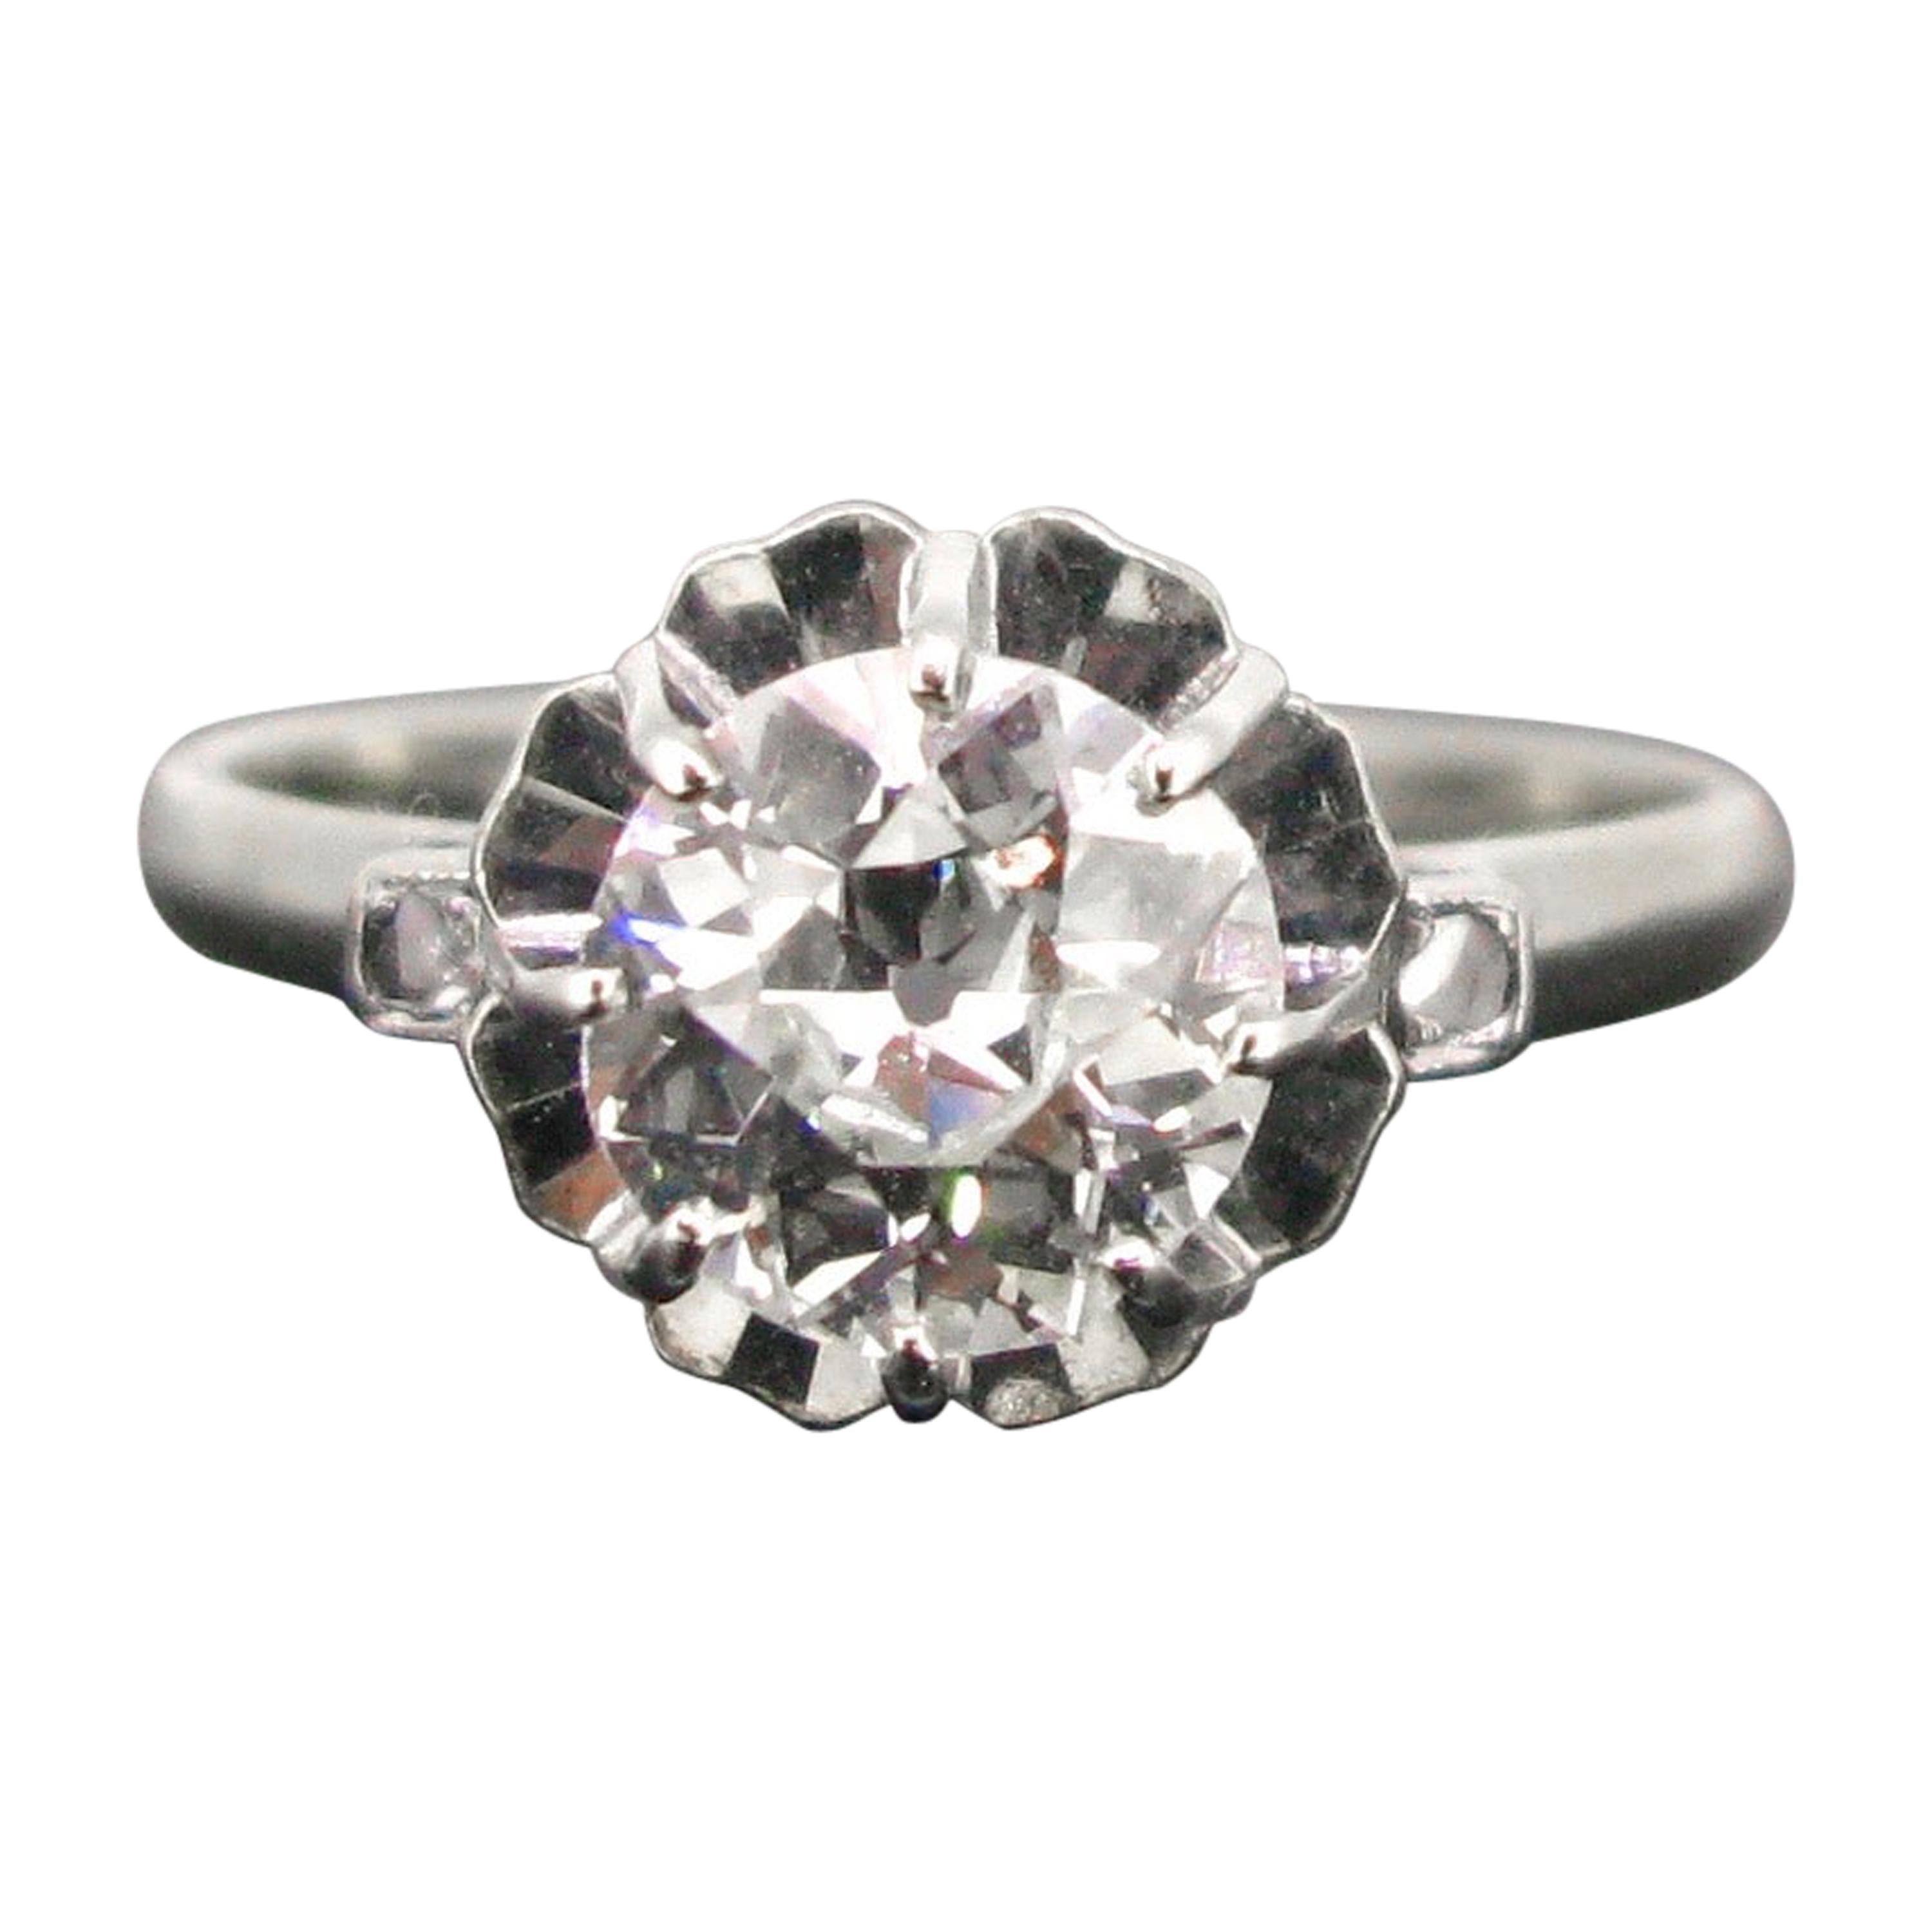 1.25 Carat Old European Cut Diamond Solitaire Art Deco Platinum Ring